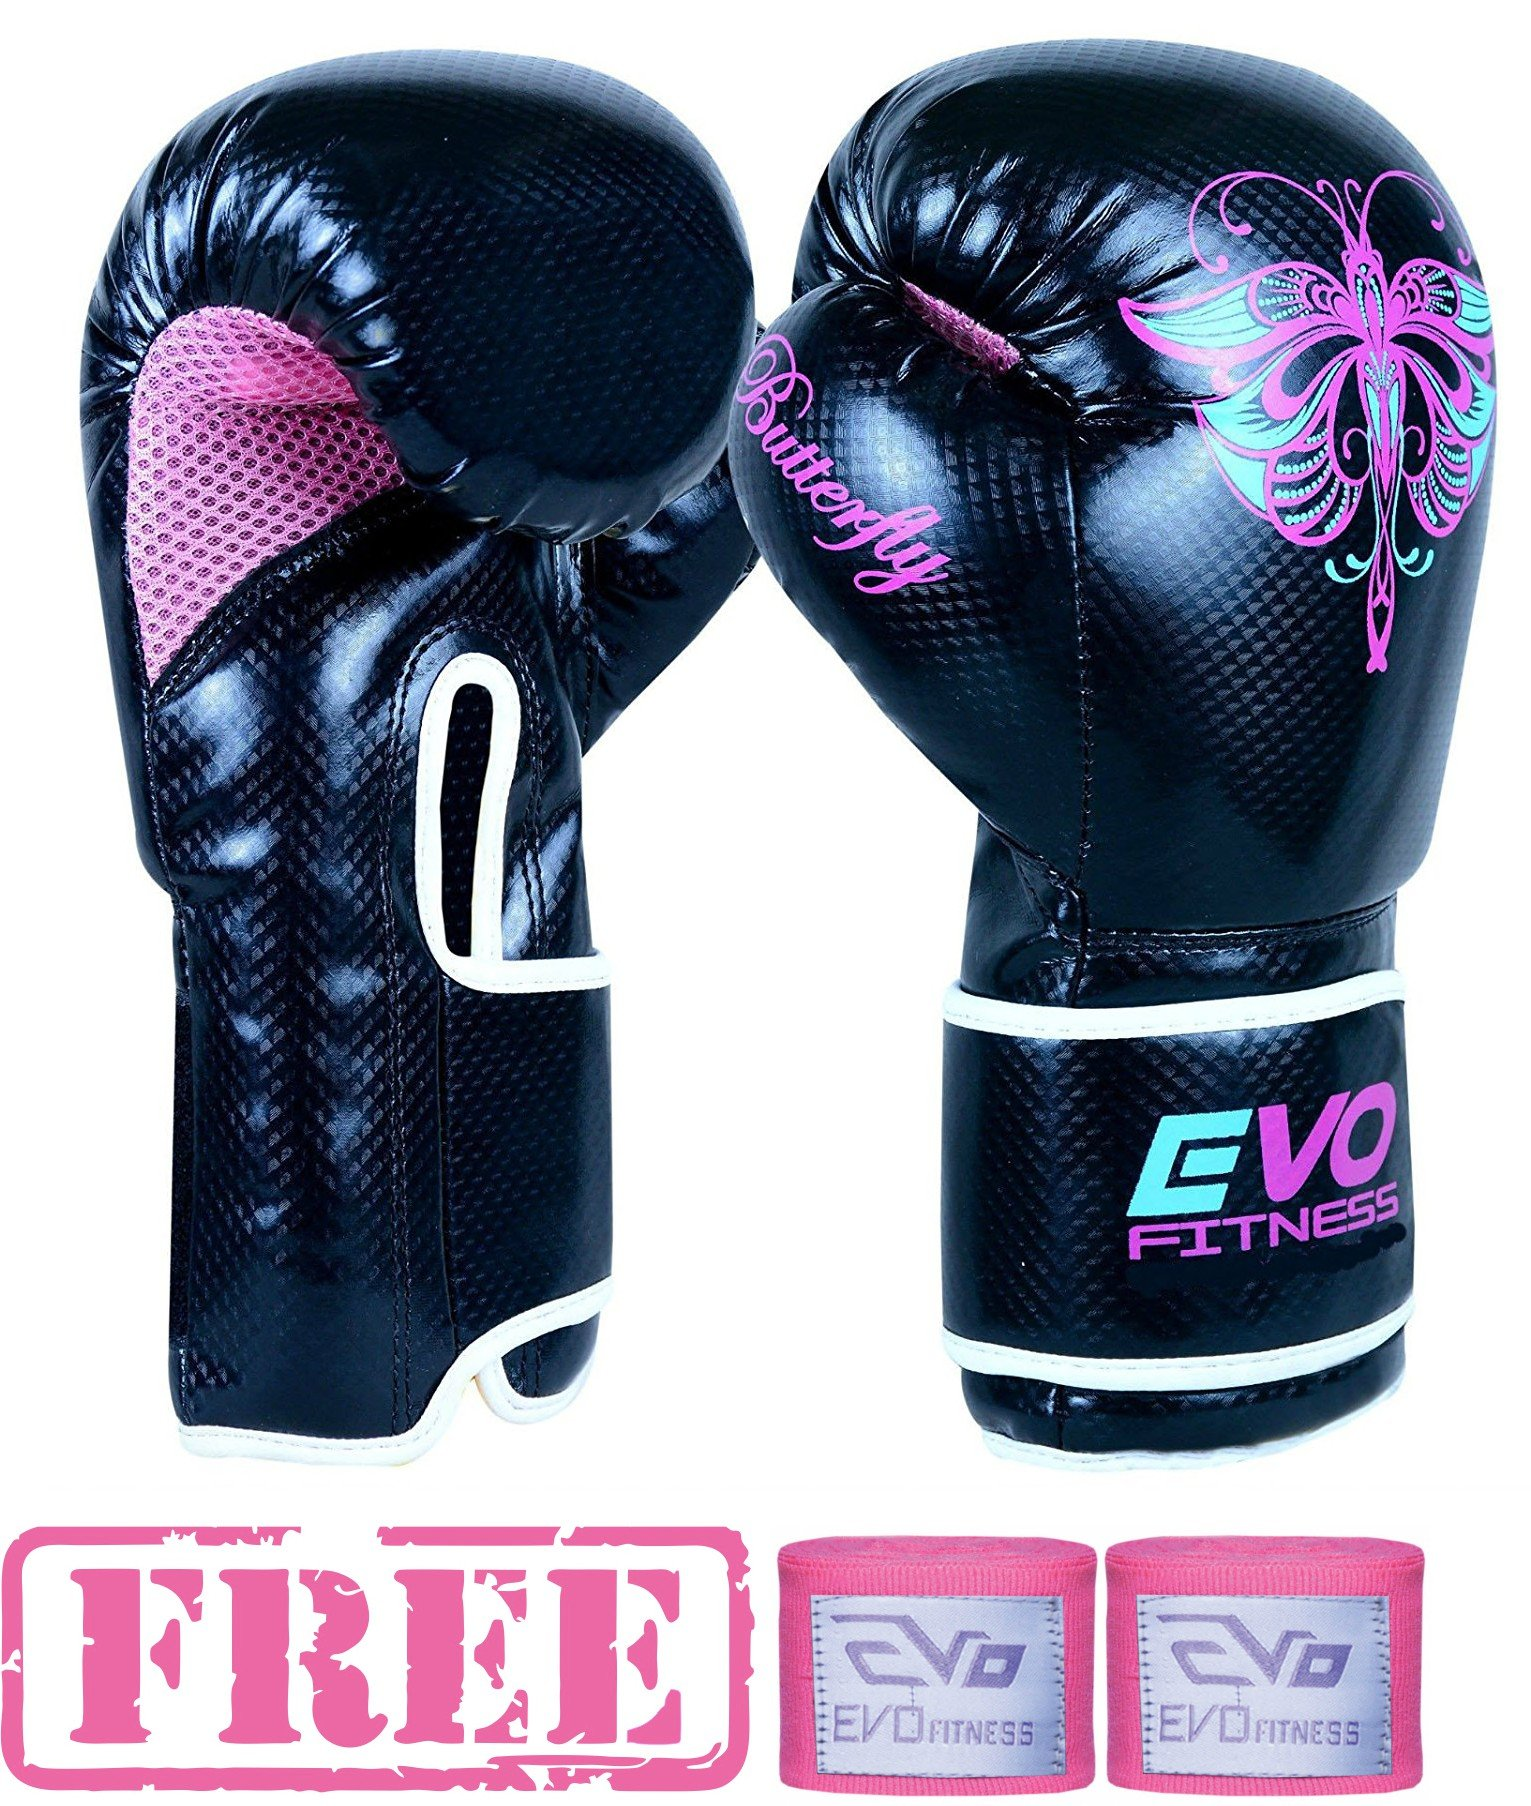 Evo Fitness Boxing Gloves Review: Best Rated In Boxing Fight Gloves & Helpful Customer